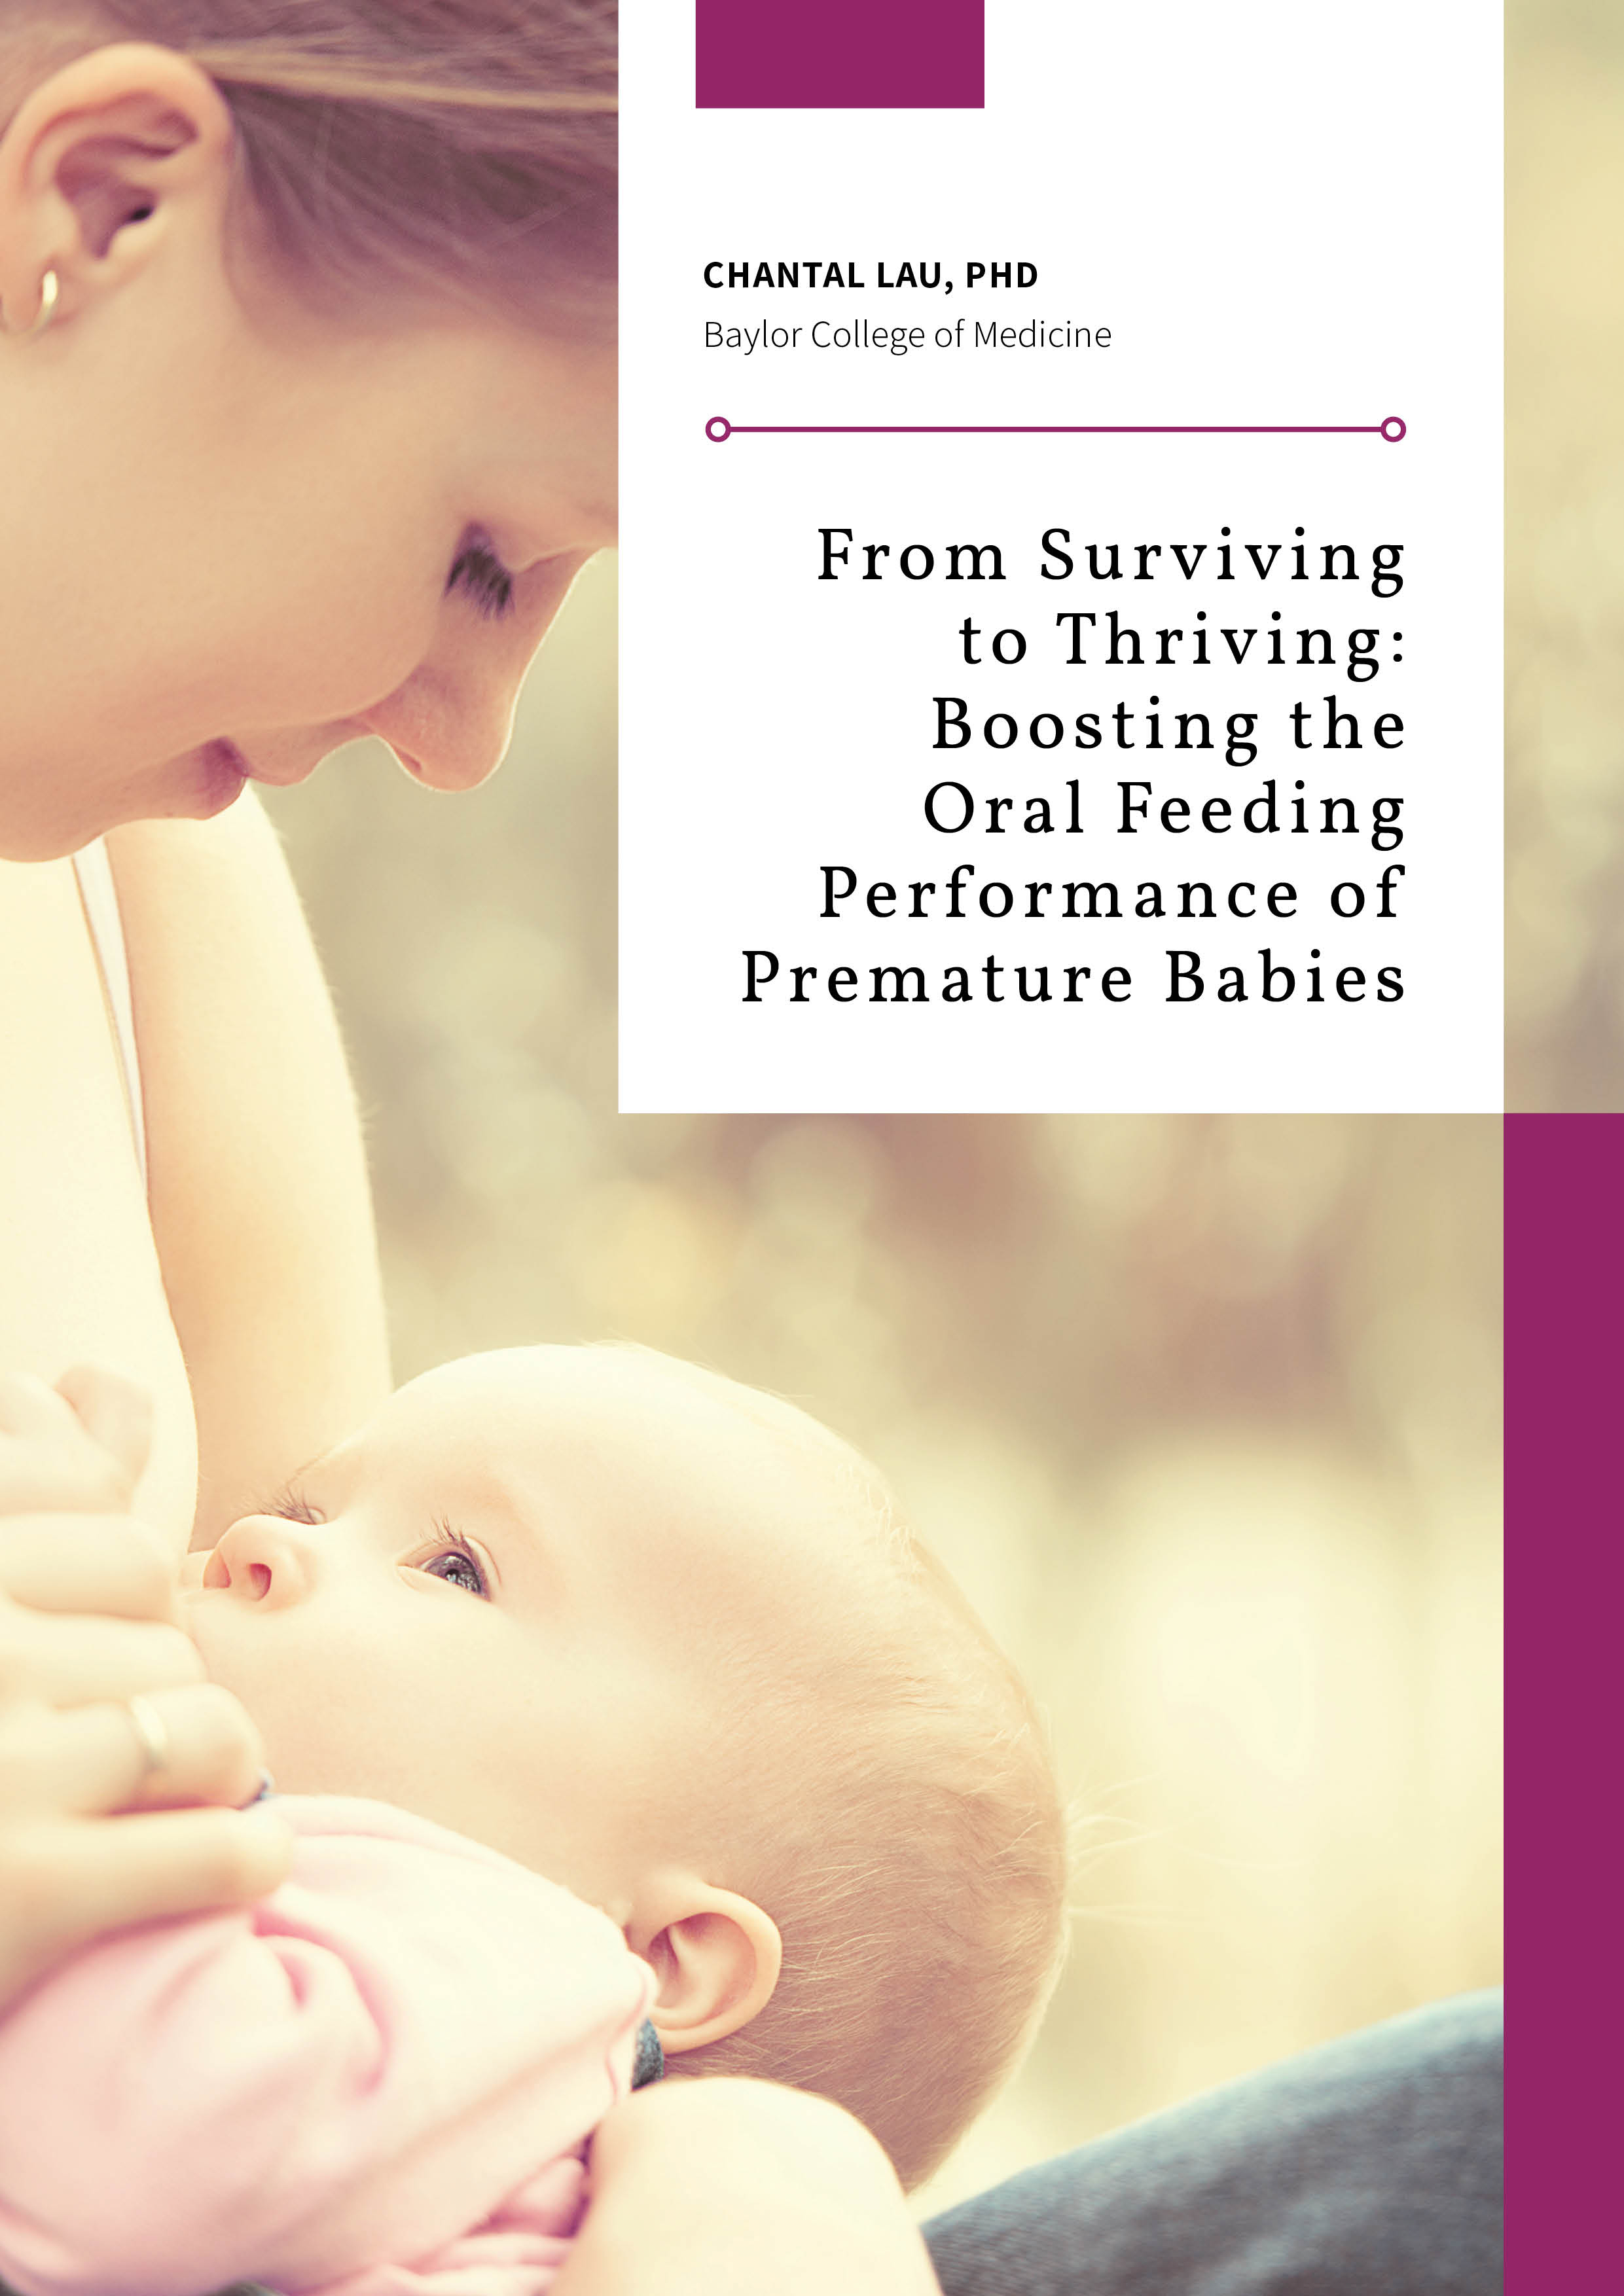 Chantau Lau – From Surviving to Thriving: Boosting the Oral Feeding Performance of Premature Babies